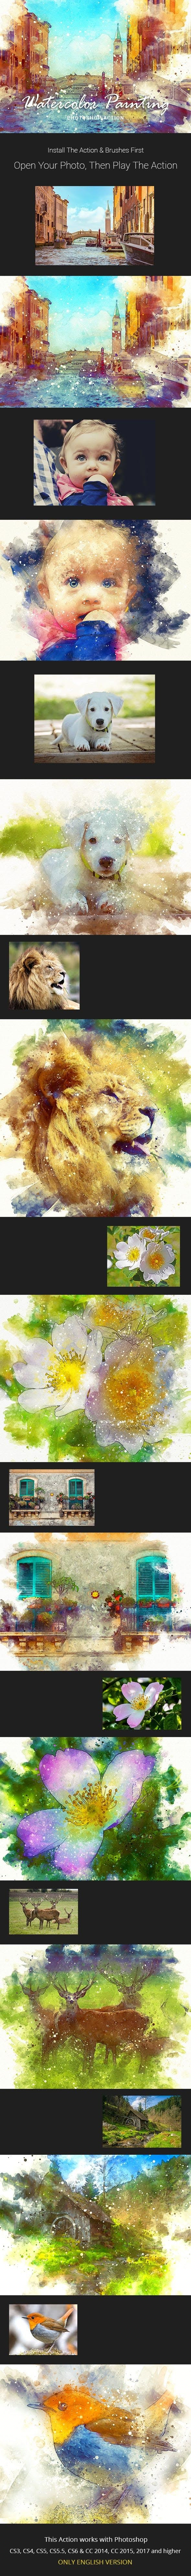 Full Watercolor Painting Photoshop Action – Sourcepsd com